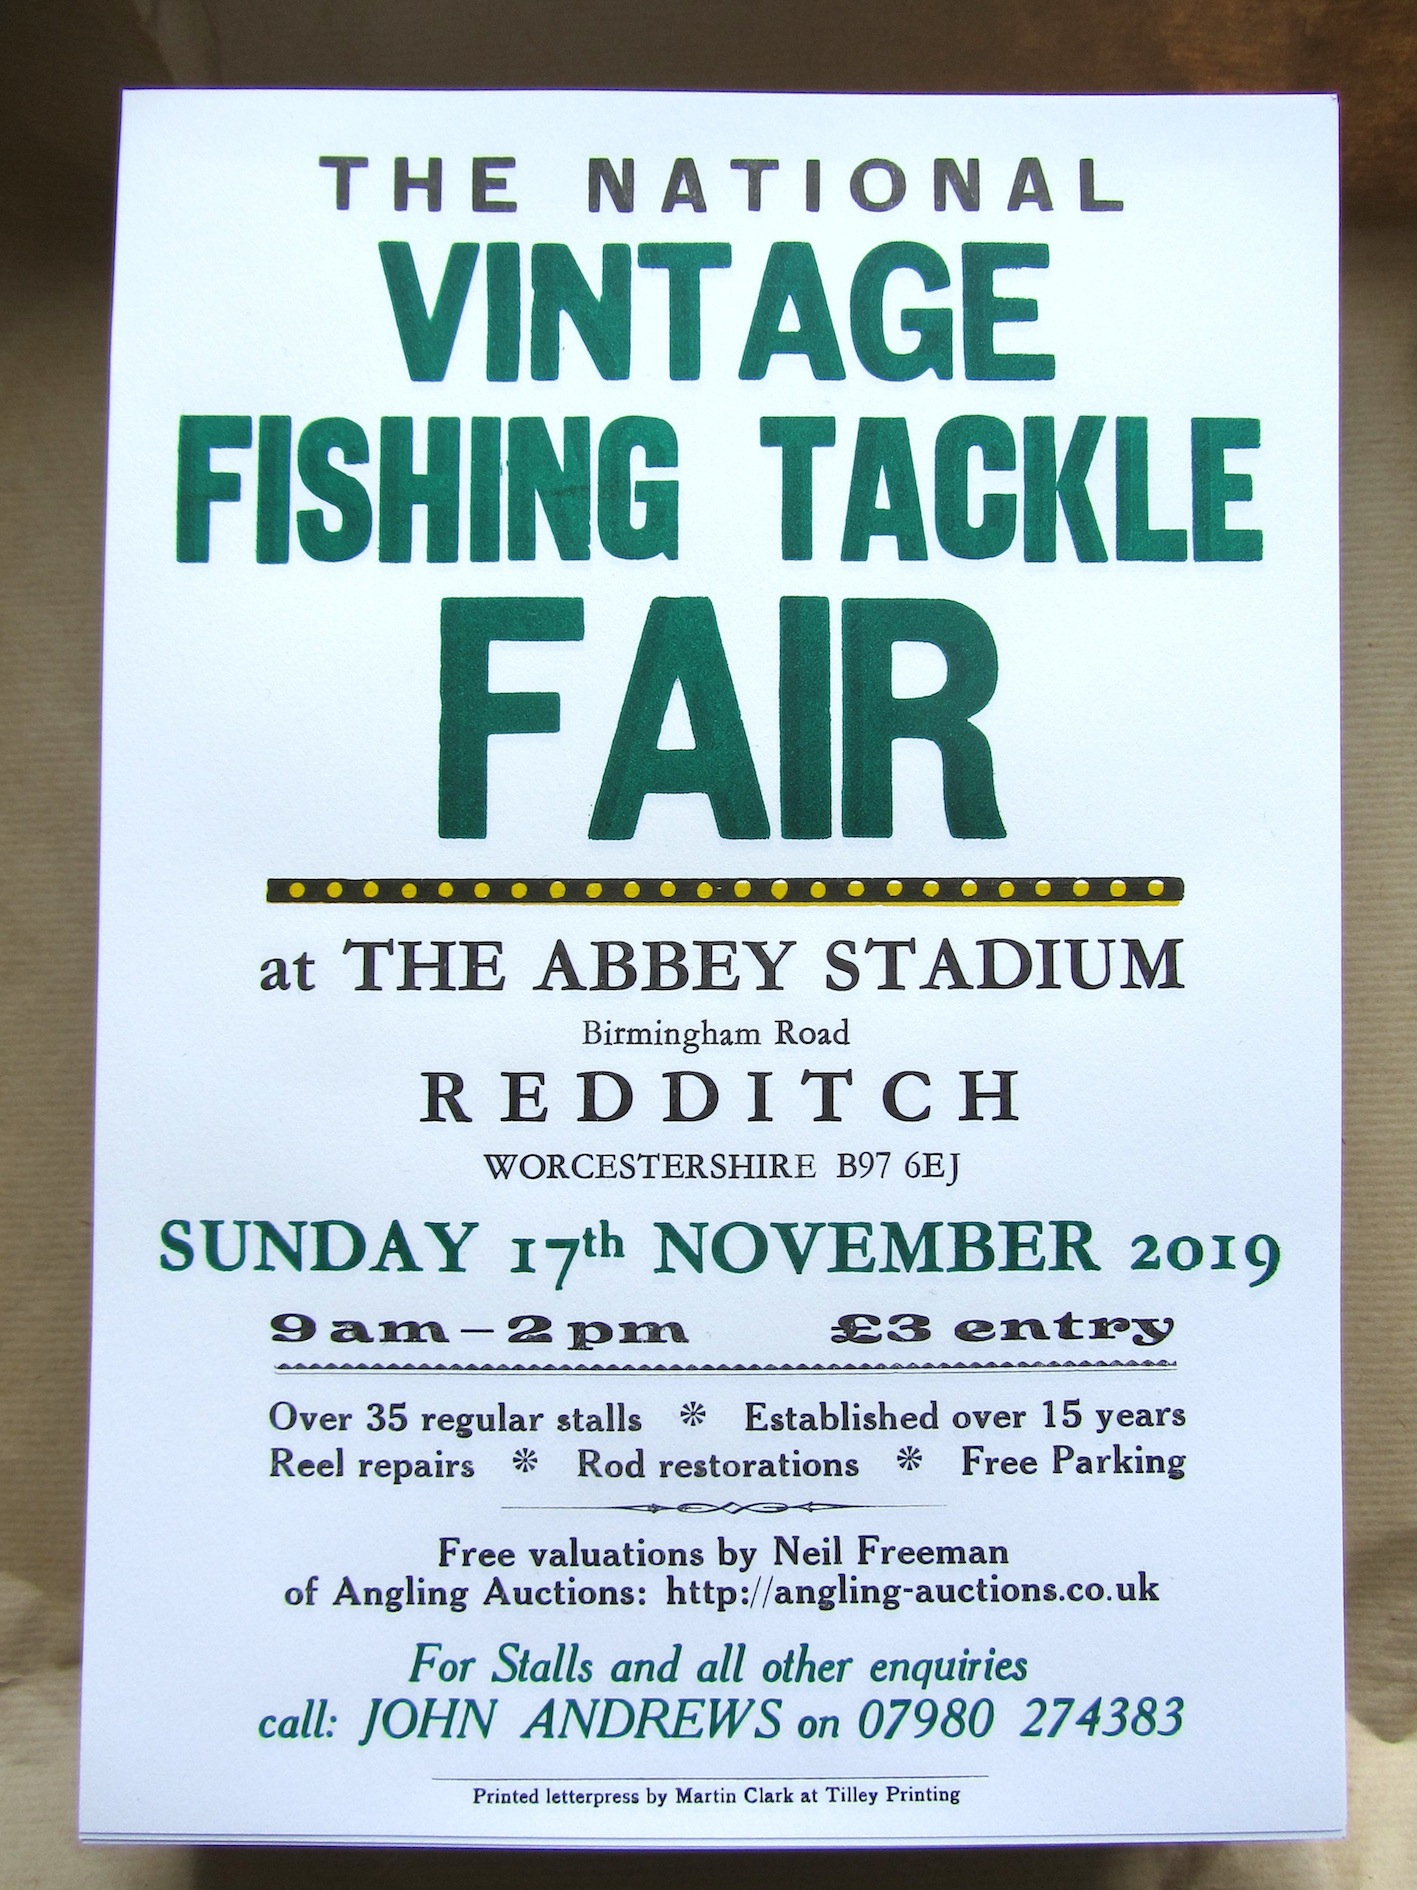 The National Vintage Fishing Tackle Fair